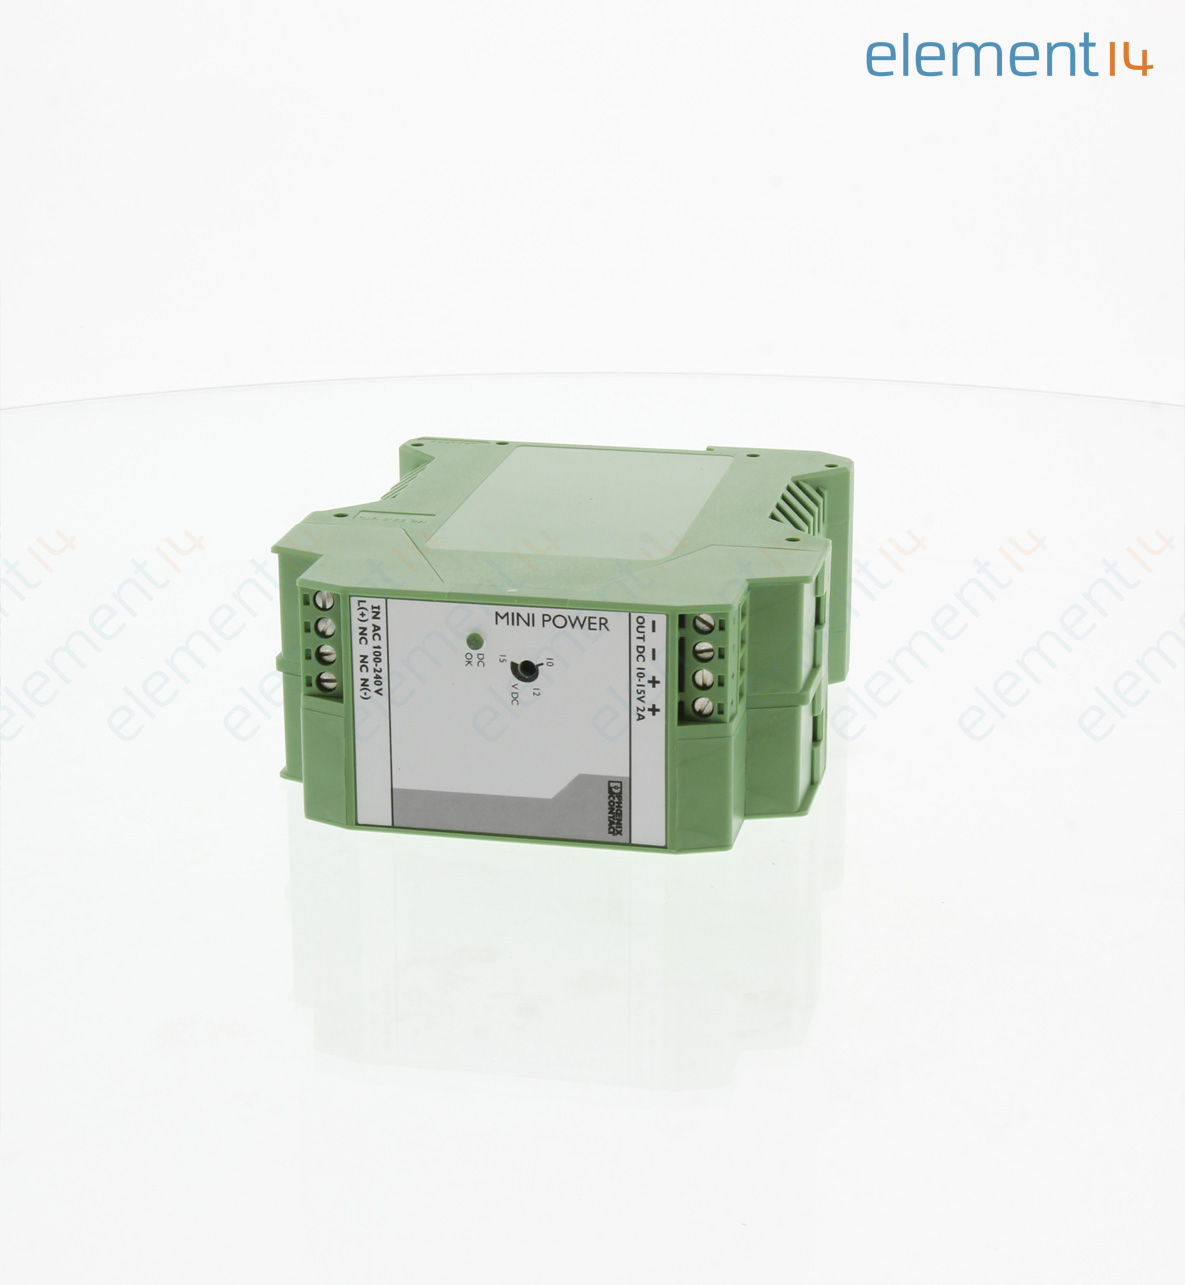 Mini Ps 100 240ac 10 15dc 2 Phoenix Contact Ac Dc Din Rail Power These Are The Pdf Documents Related To 12vdc 120vac Converter Add Compare